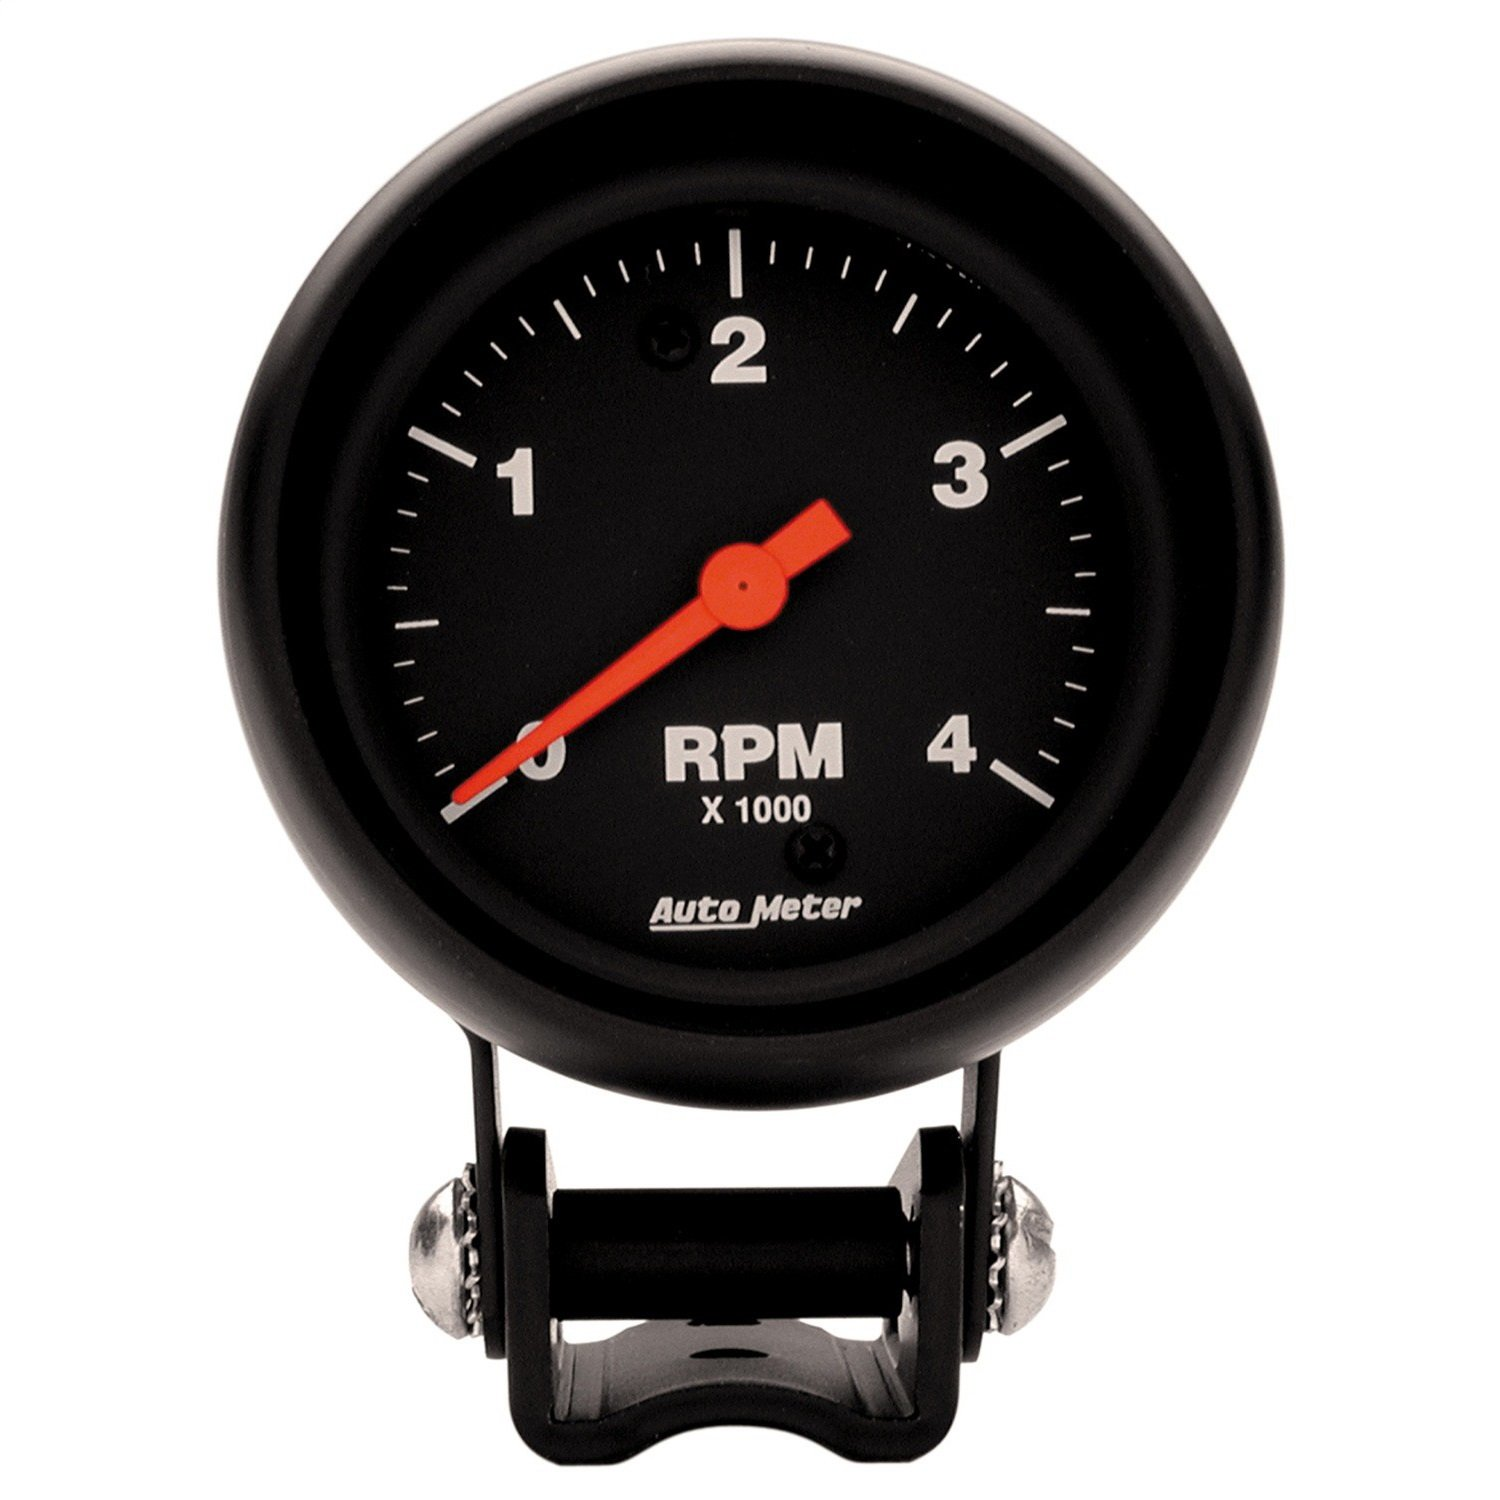 Auto Meter 2890 Z-Series Black 2-5/8-Inch 4000 RPM Mini Tach/Low-Rev Tachometer